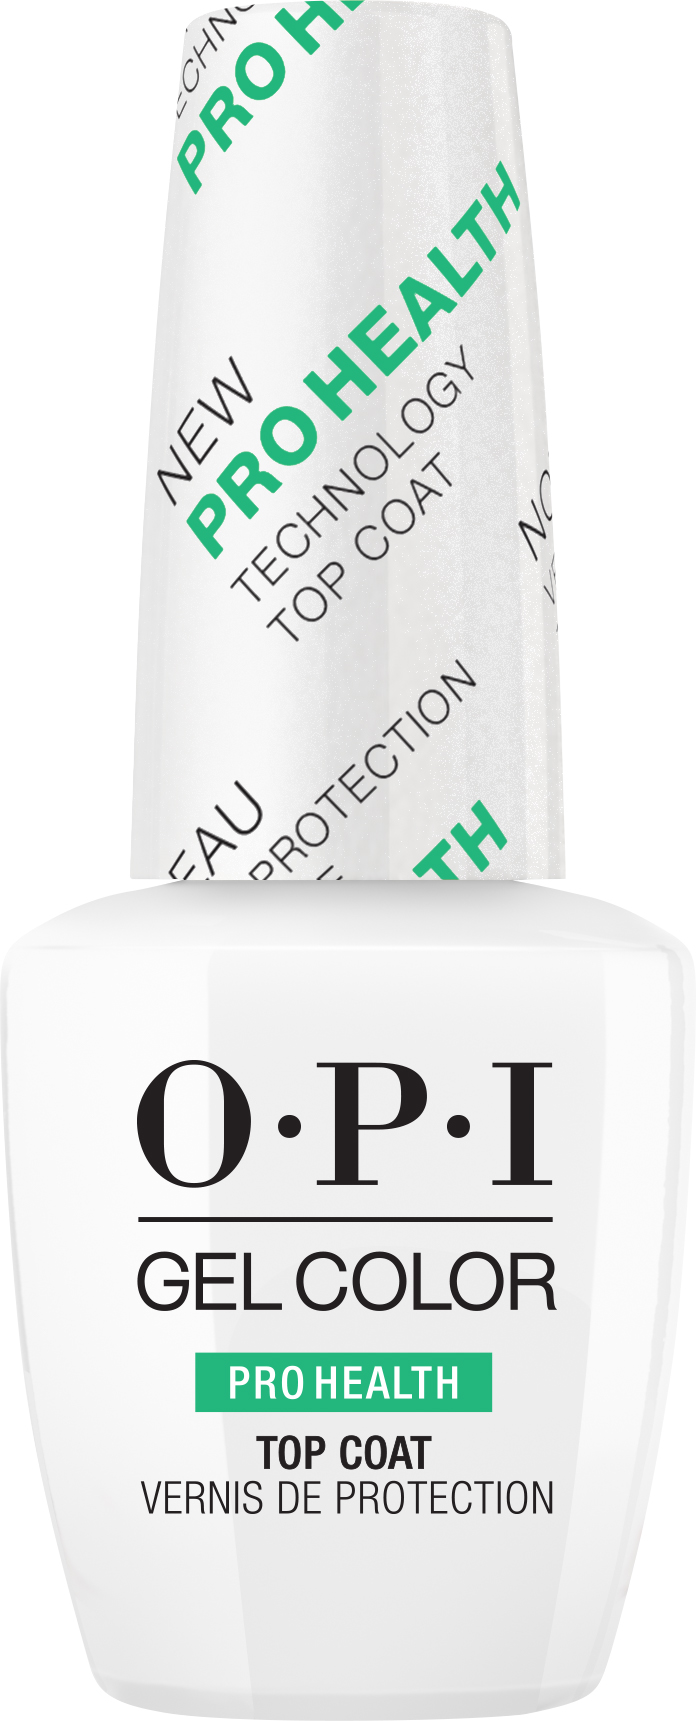 OPI ProHealth Top Coat